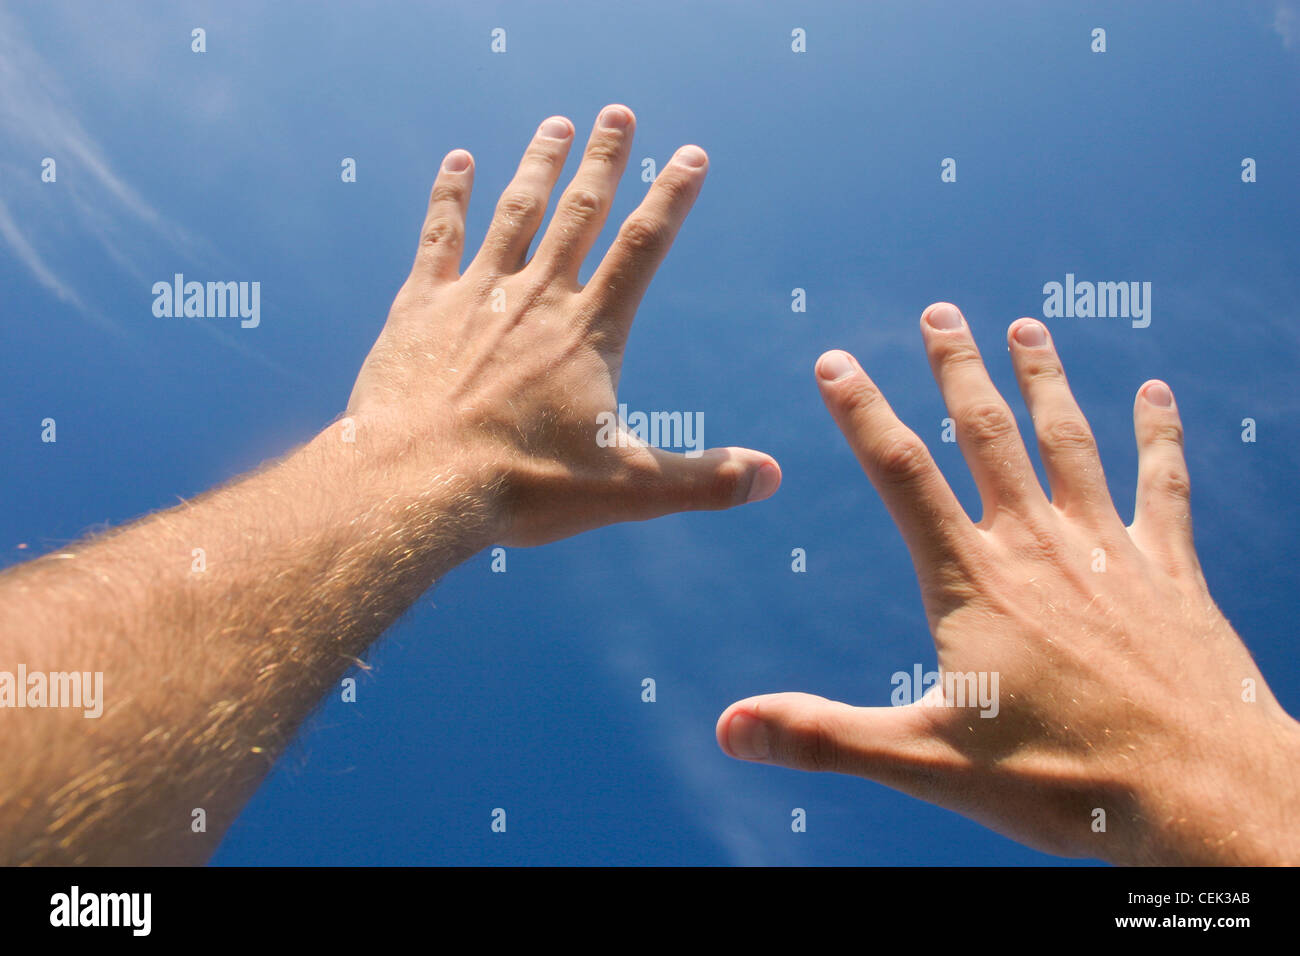 Two male hands stretching to reach the sky - Stock Image